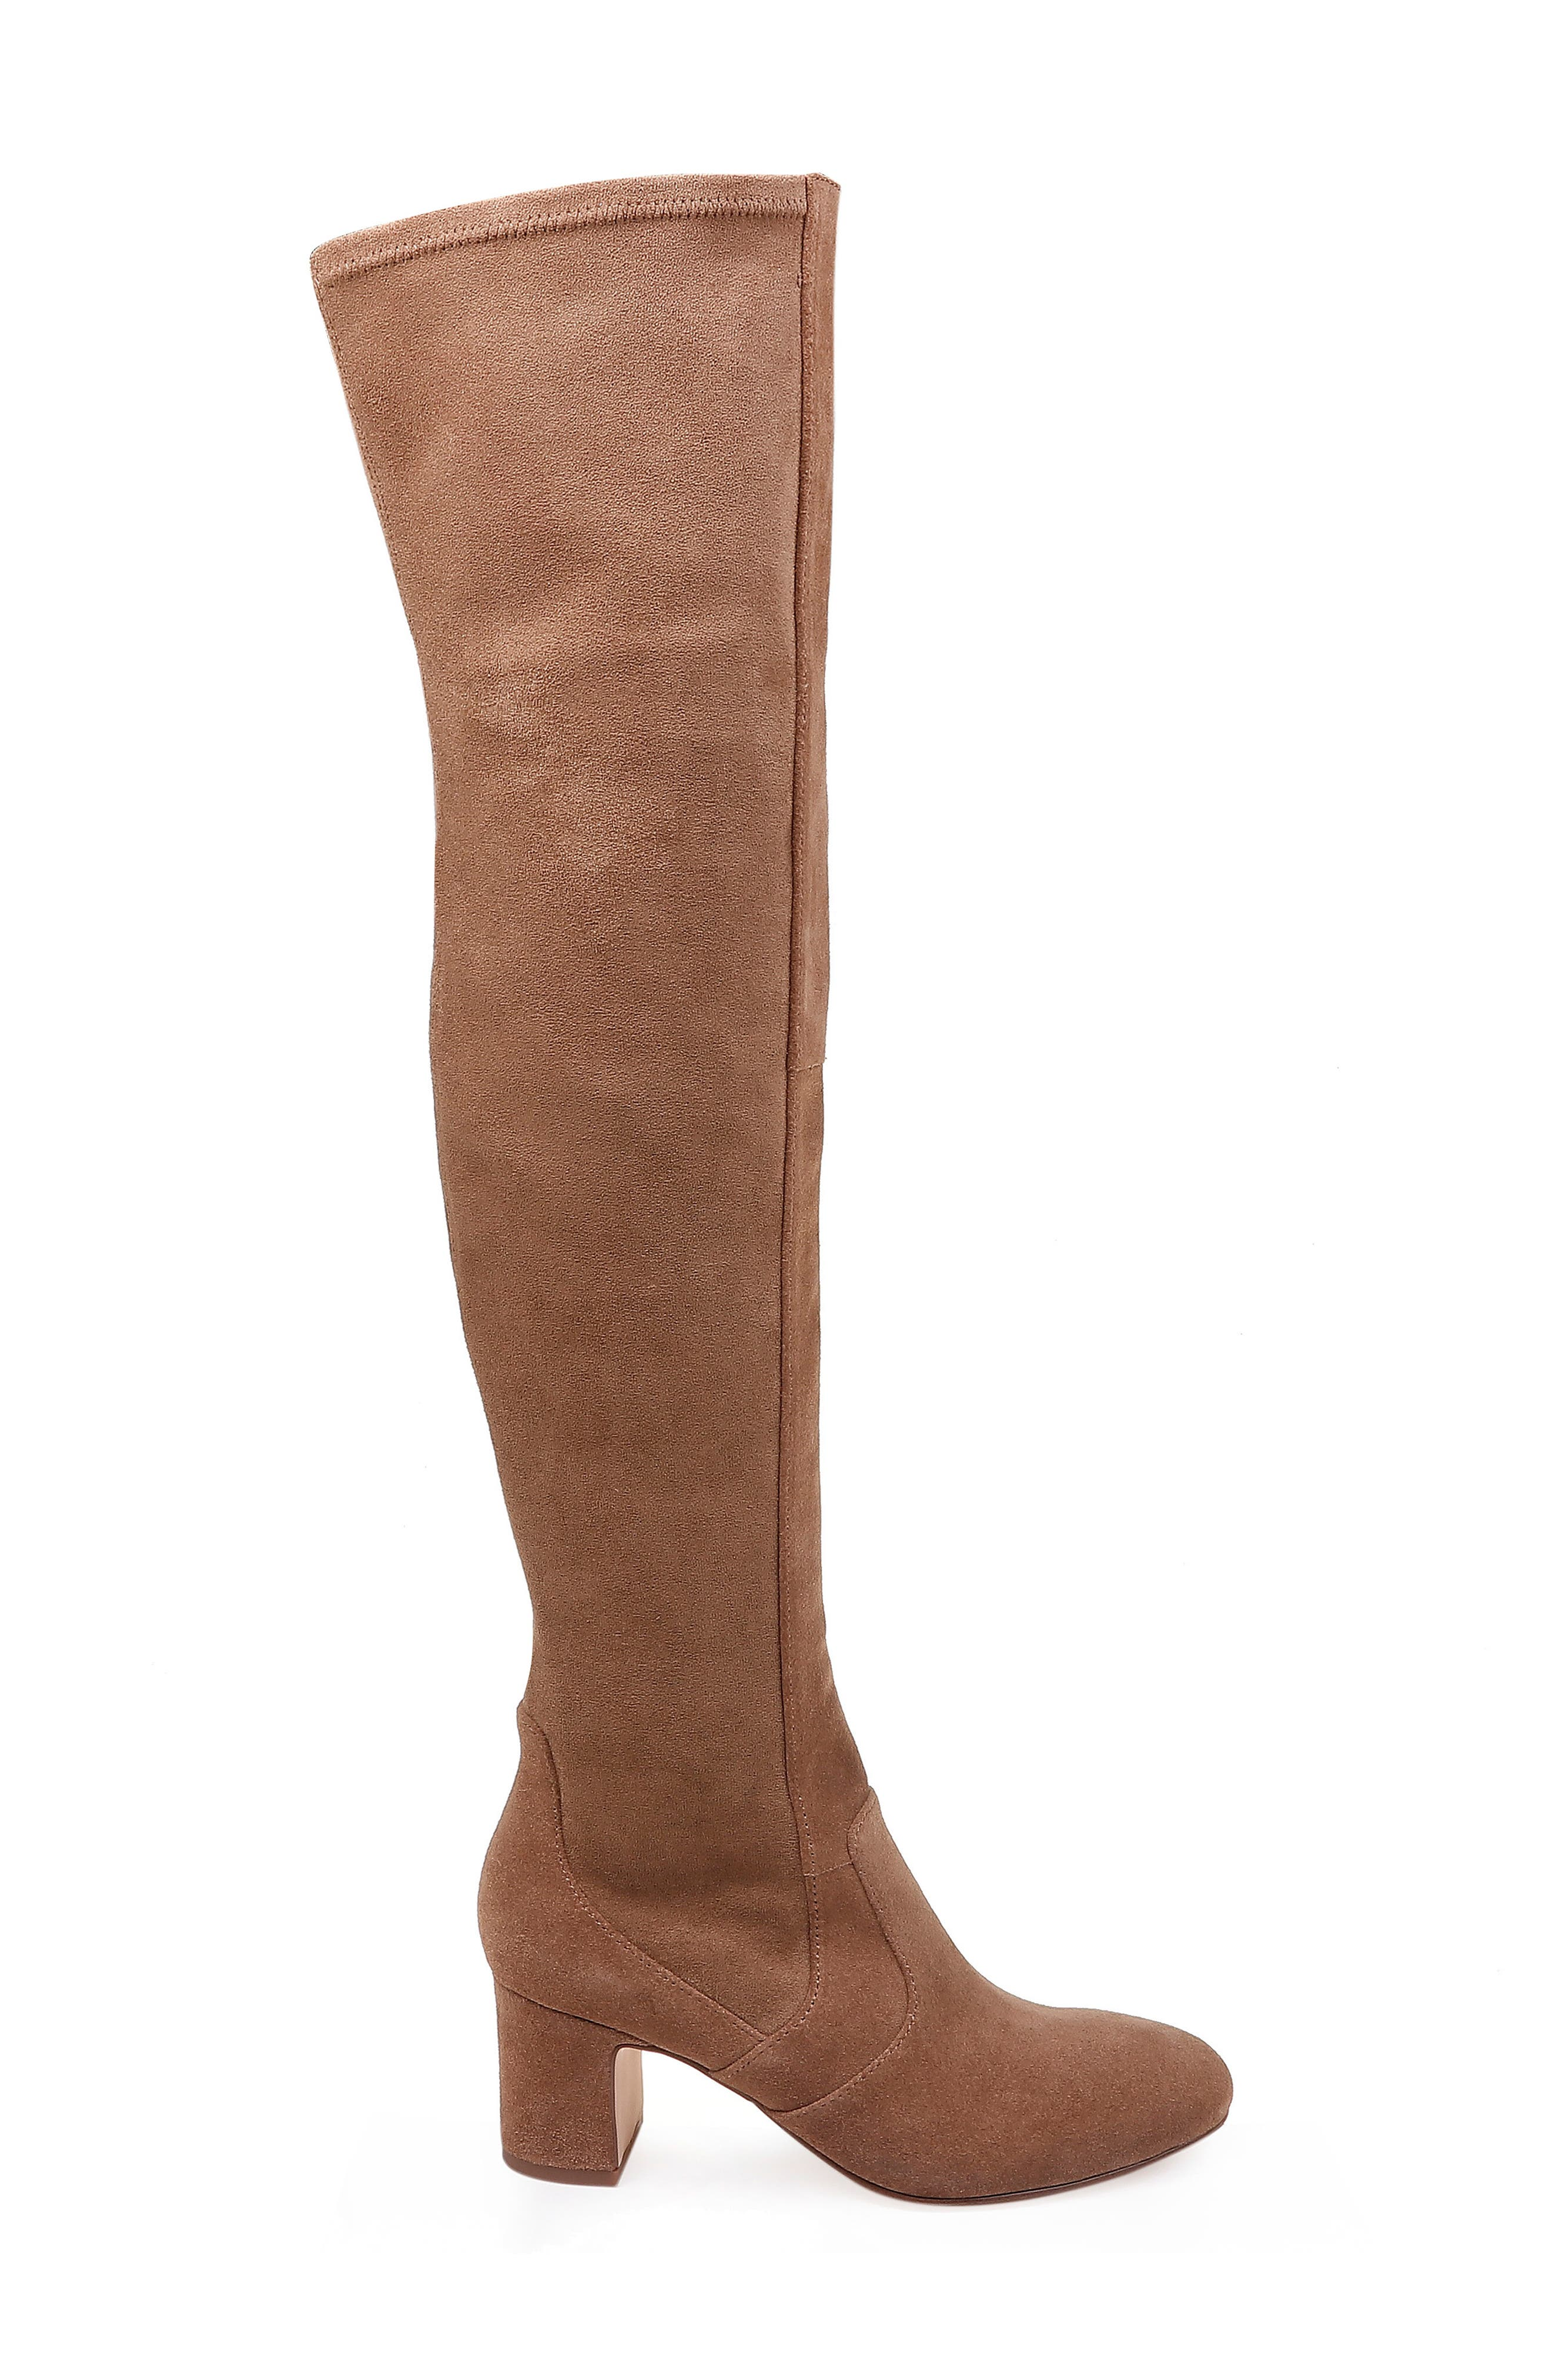 Over the Knee Stretch Back Boot,                             Alternate thumbnail 3, color,                             LIGHT BROWN SUEDE